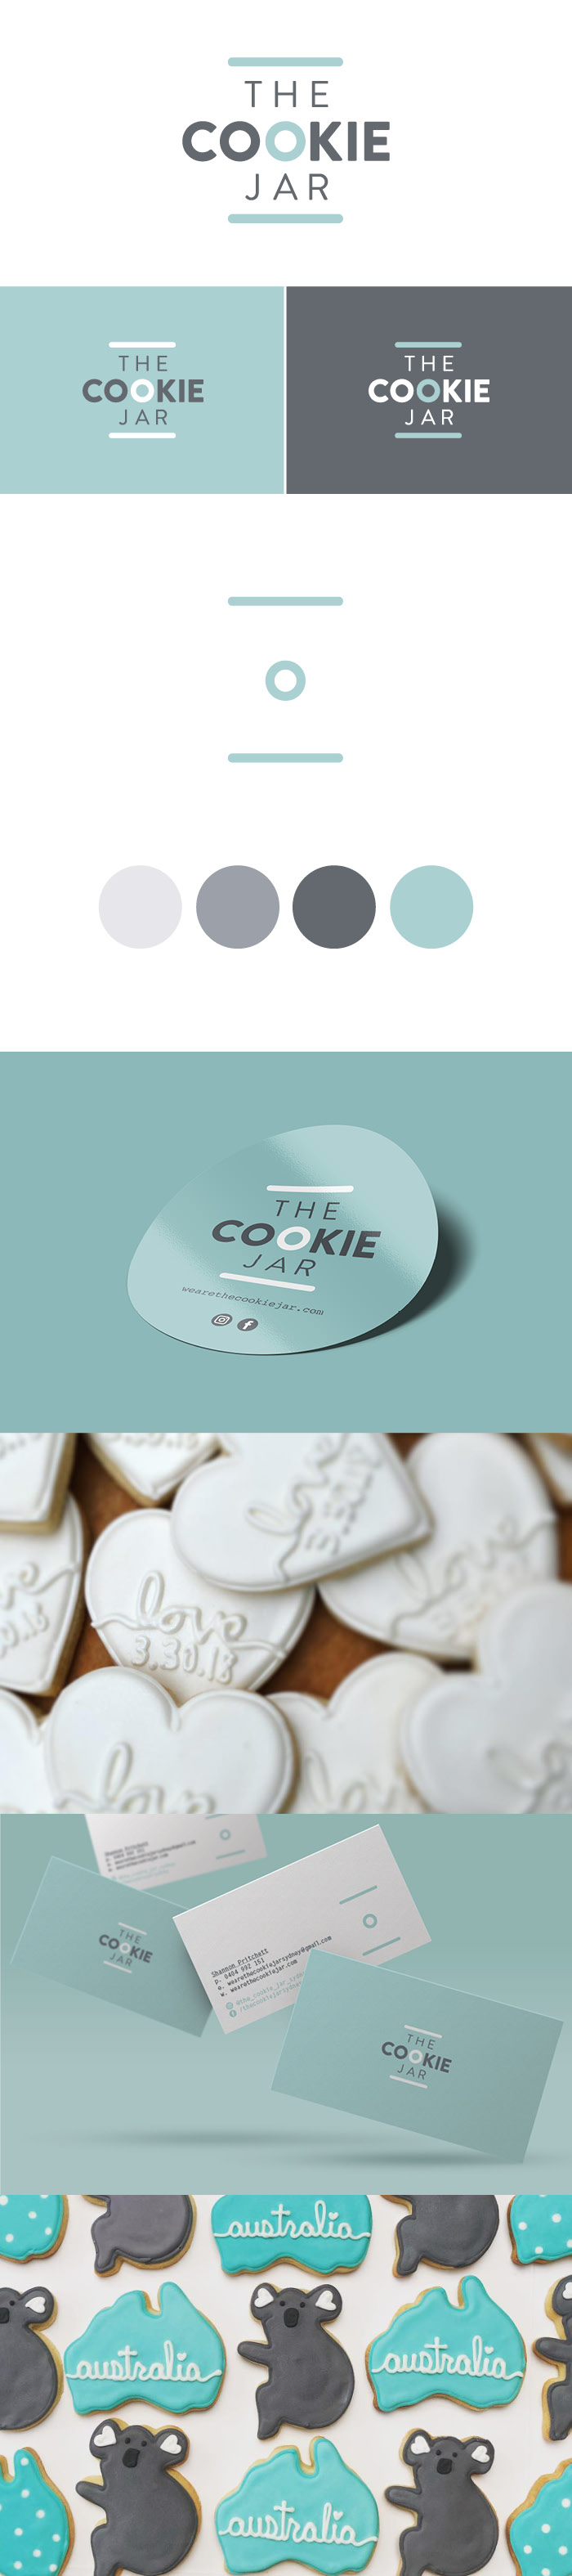 the cookie jar logo work